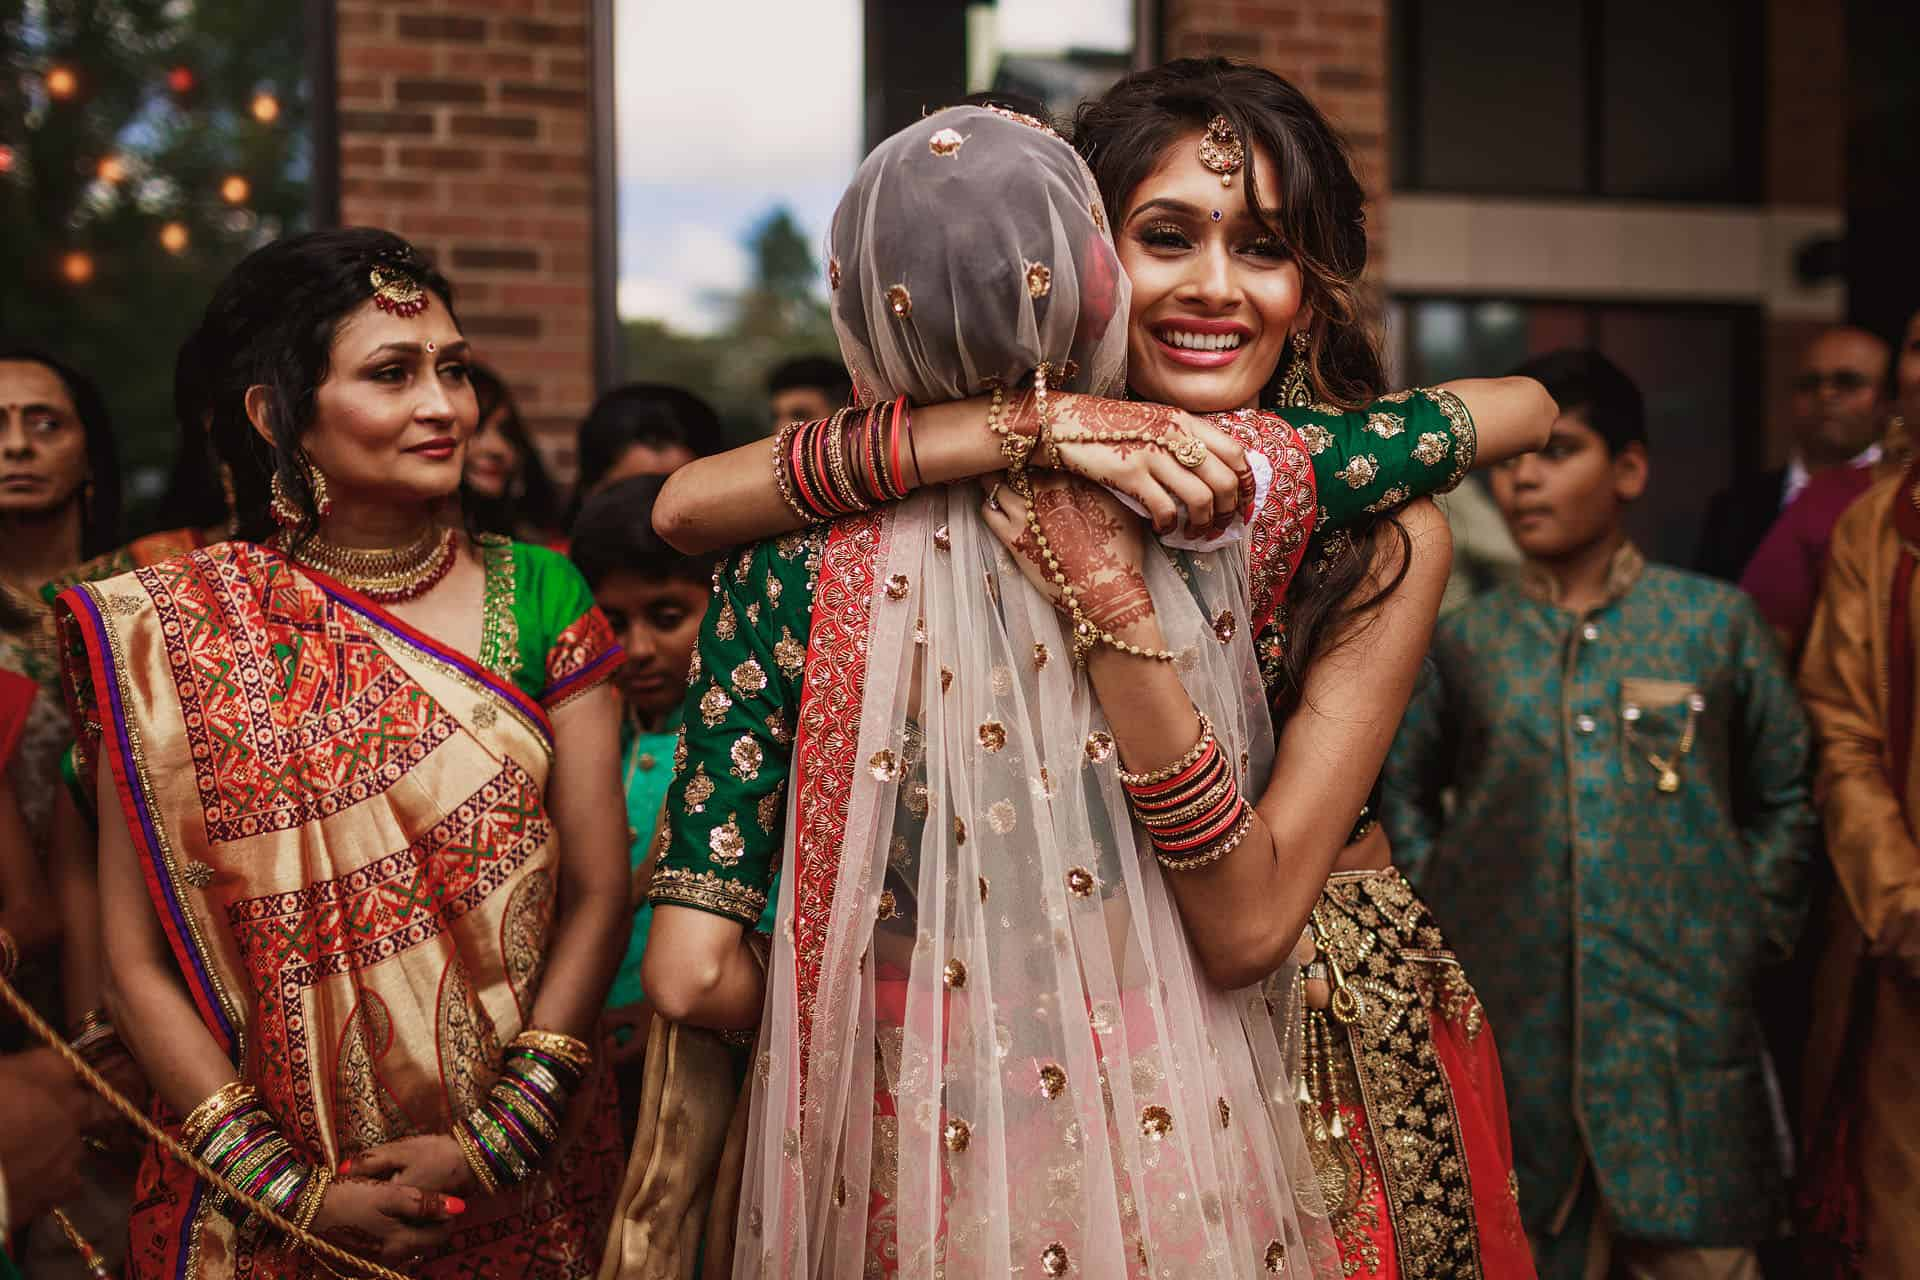 hilton t5 heathrow indian wedding photography